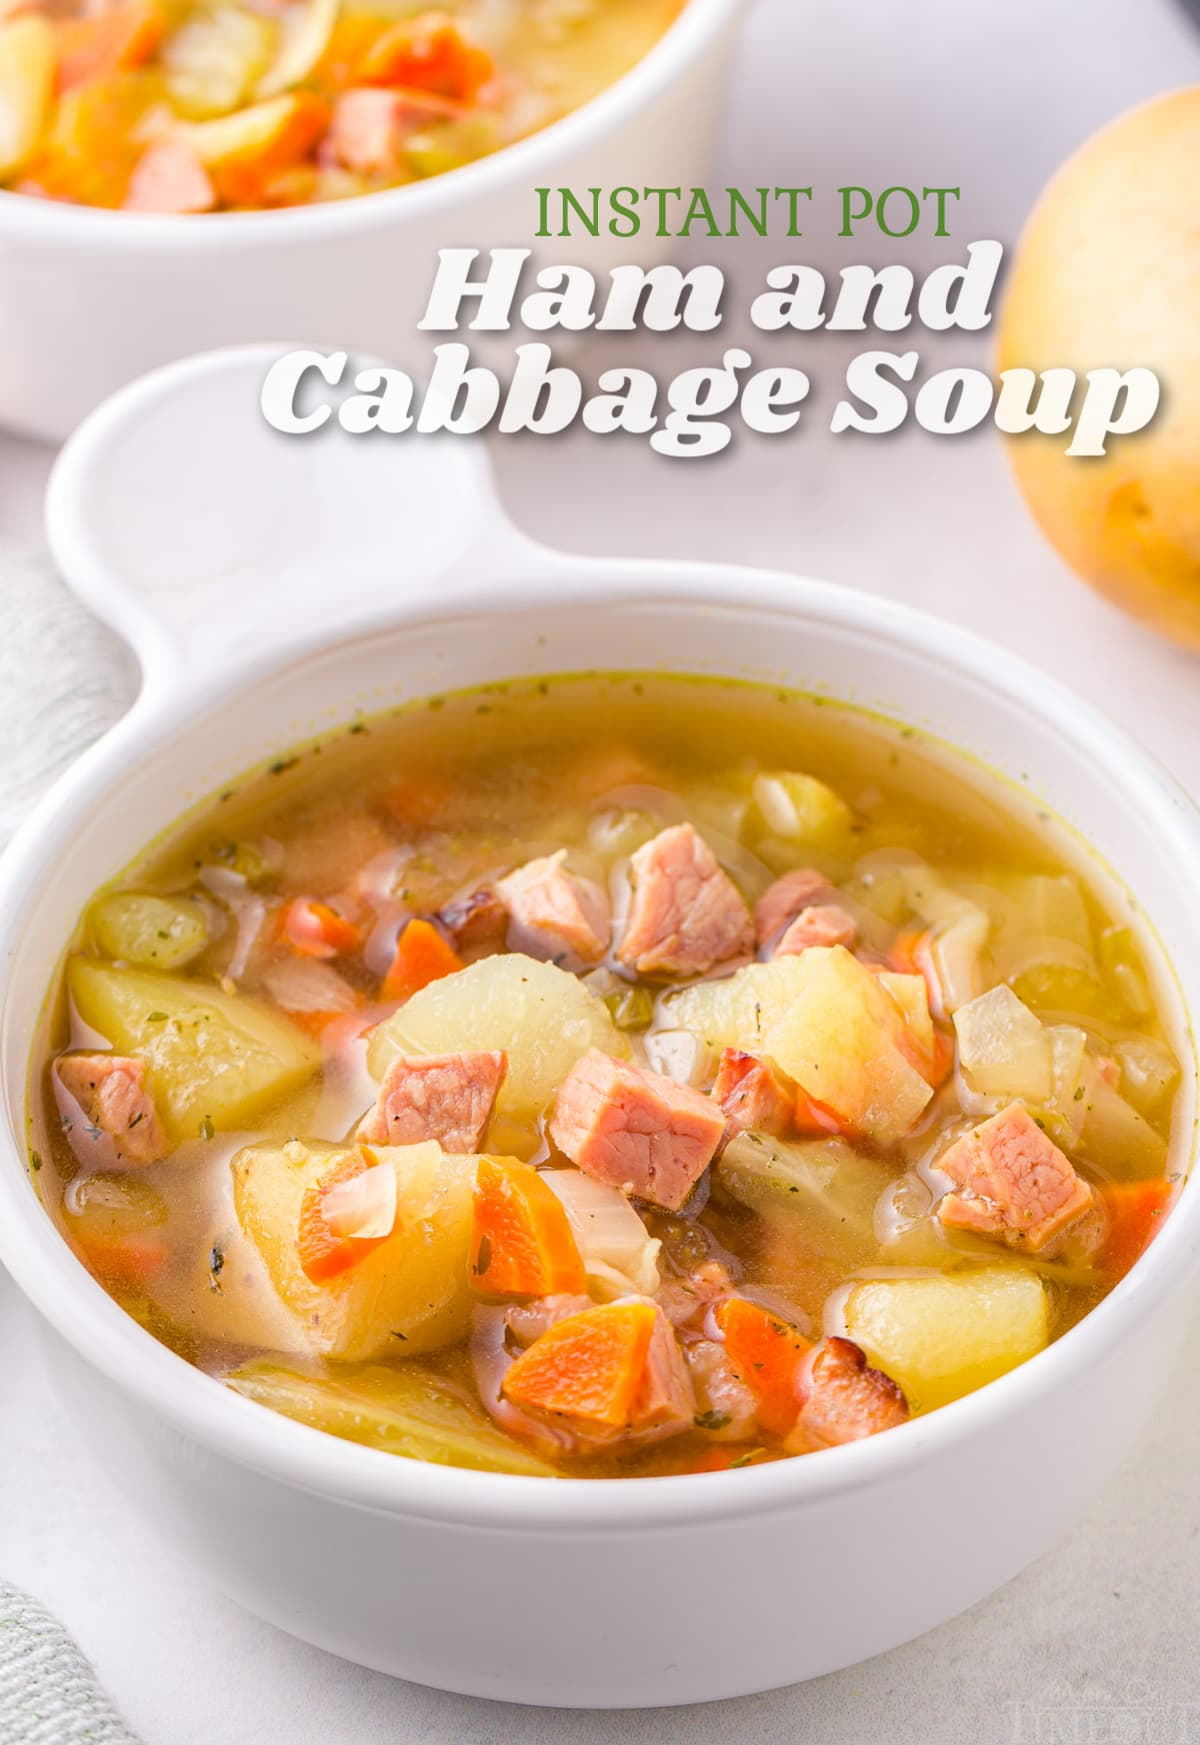 white bowl of cabbage soup with ham and title overlay at top of image.